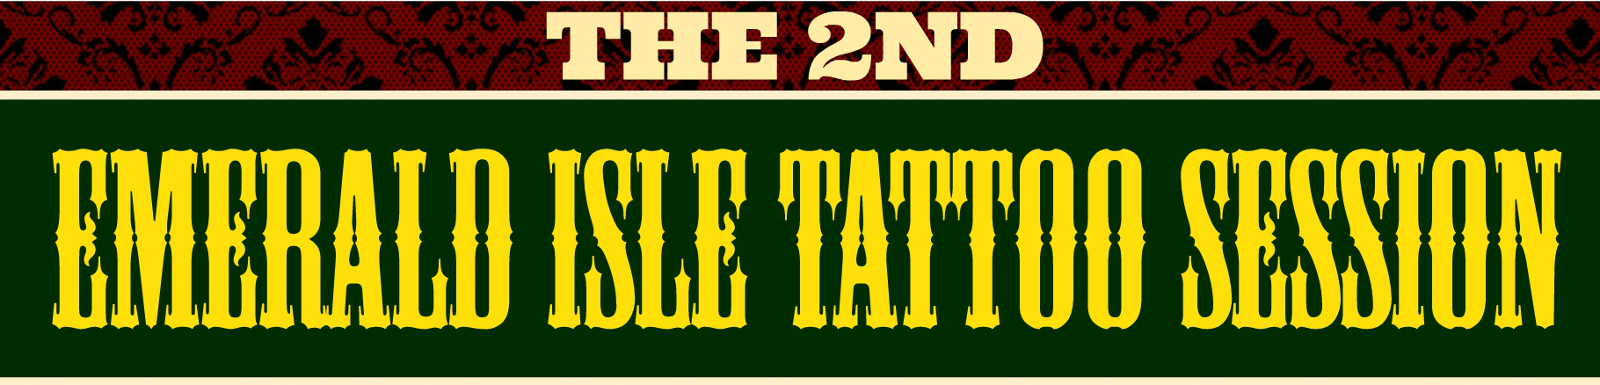 Emerald Isle Tattoo Sessions